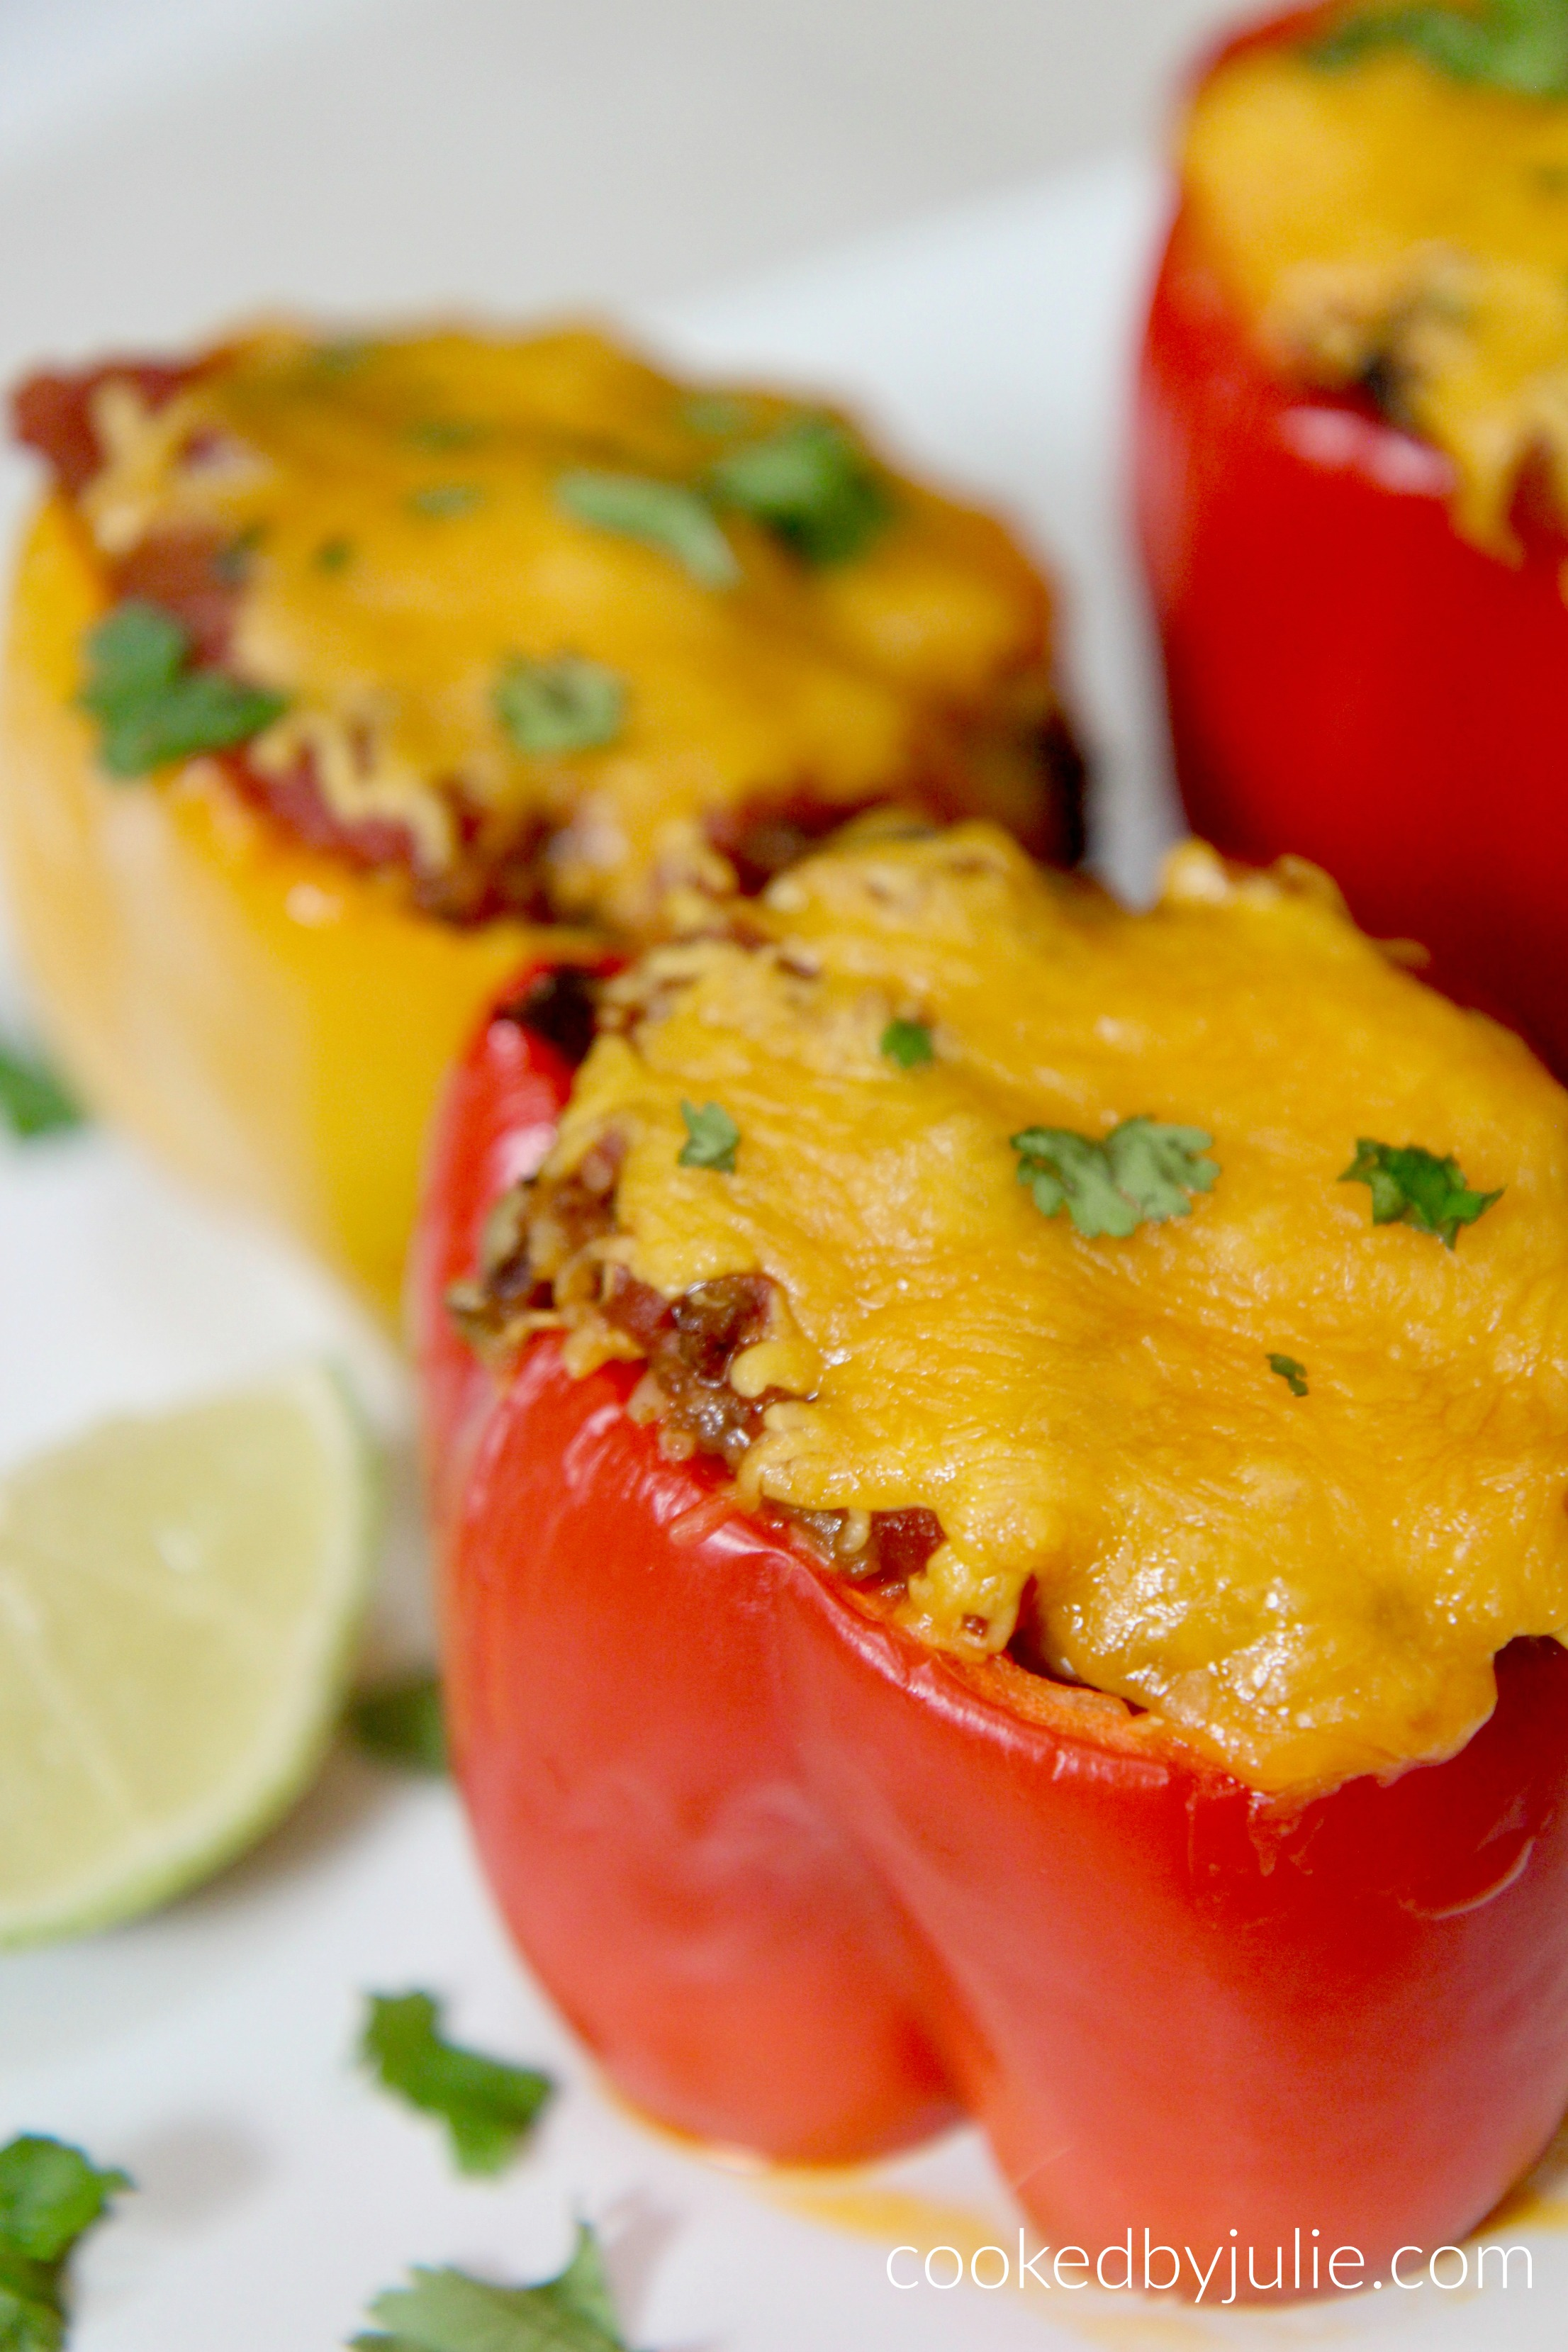 These taco stuffed peppers are a super easy, cheesy, and delicious weeknight dinner